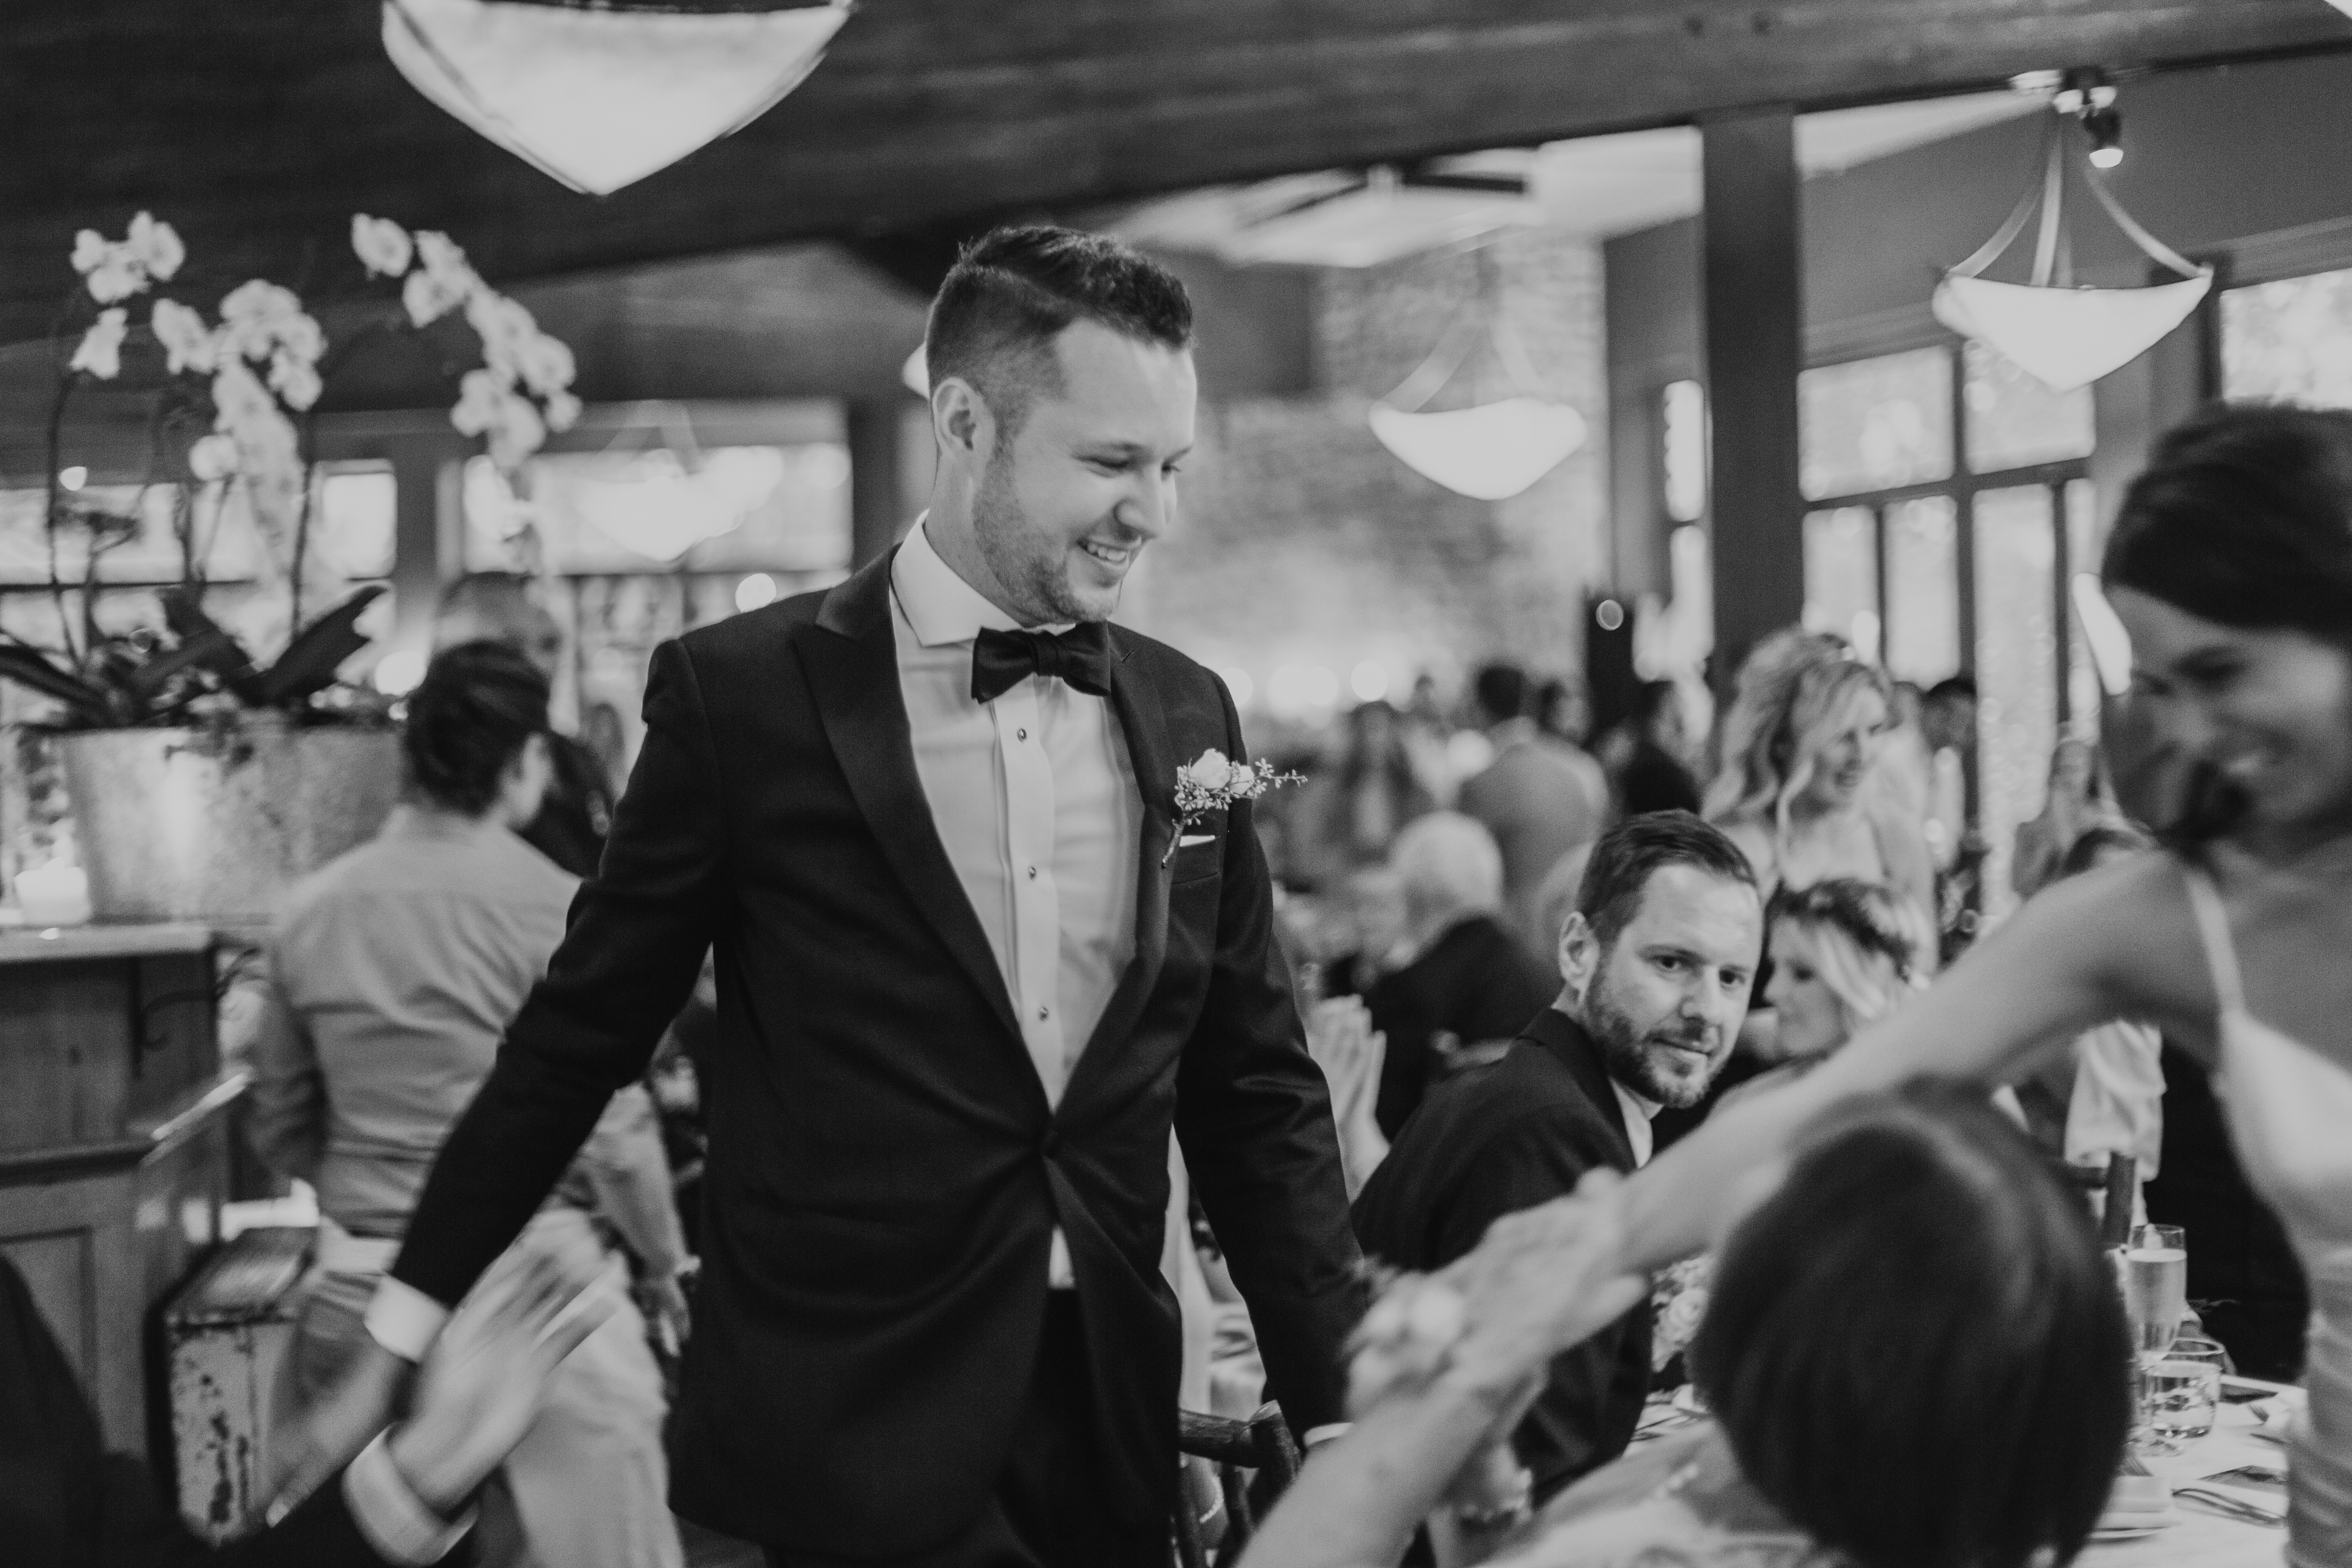 the groom enters the reception